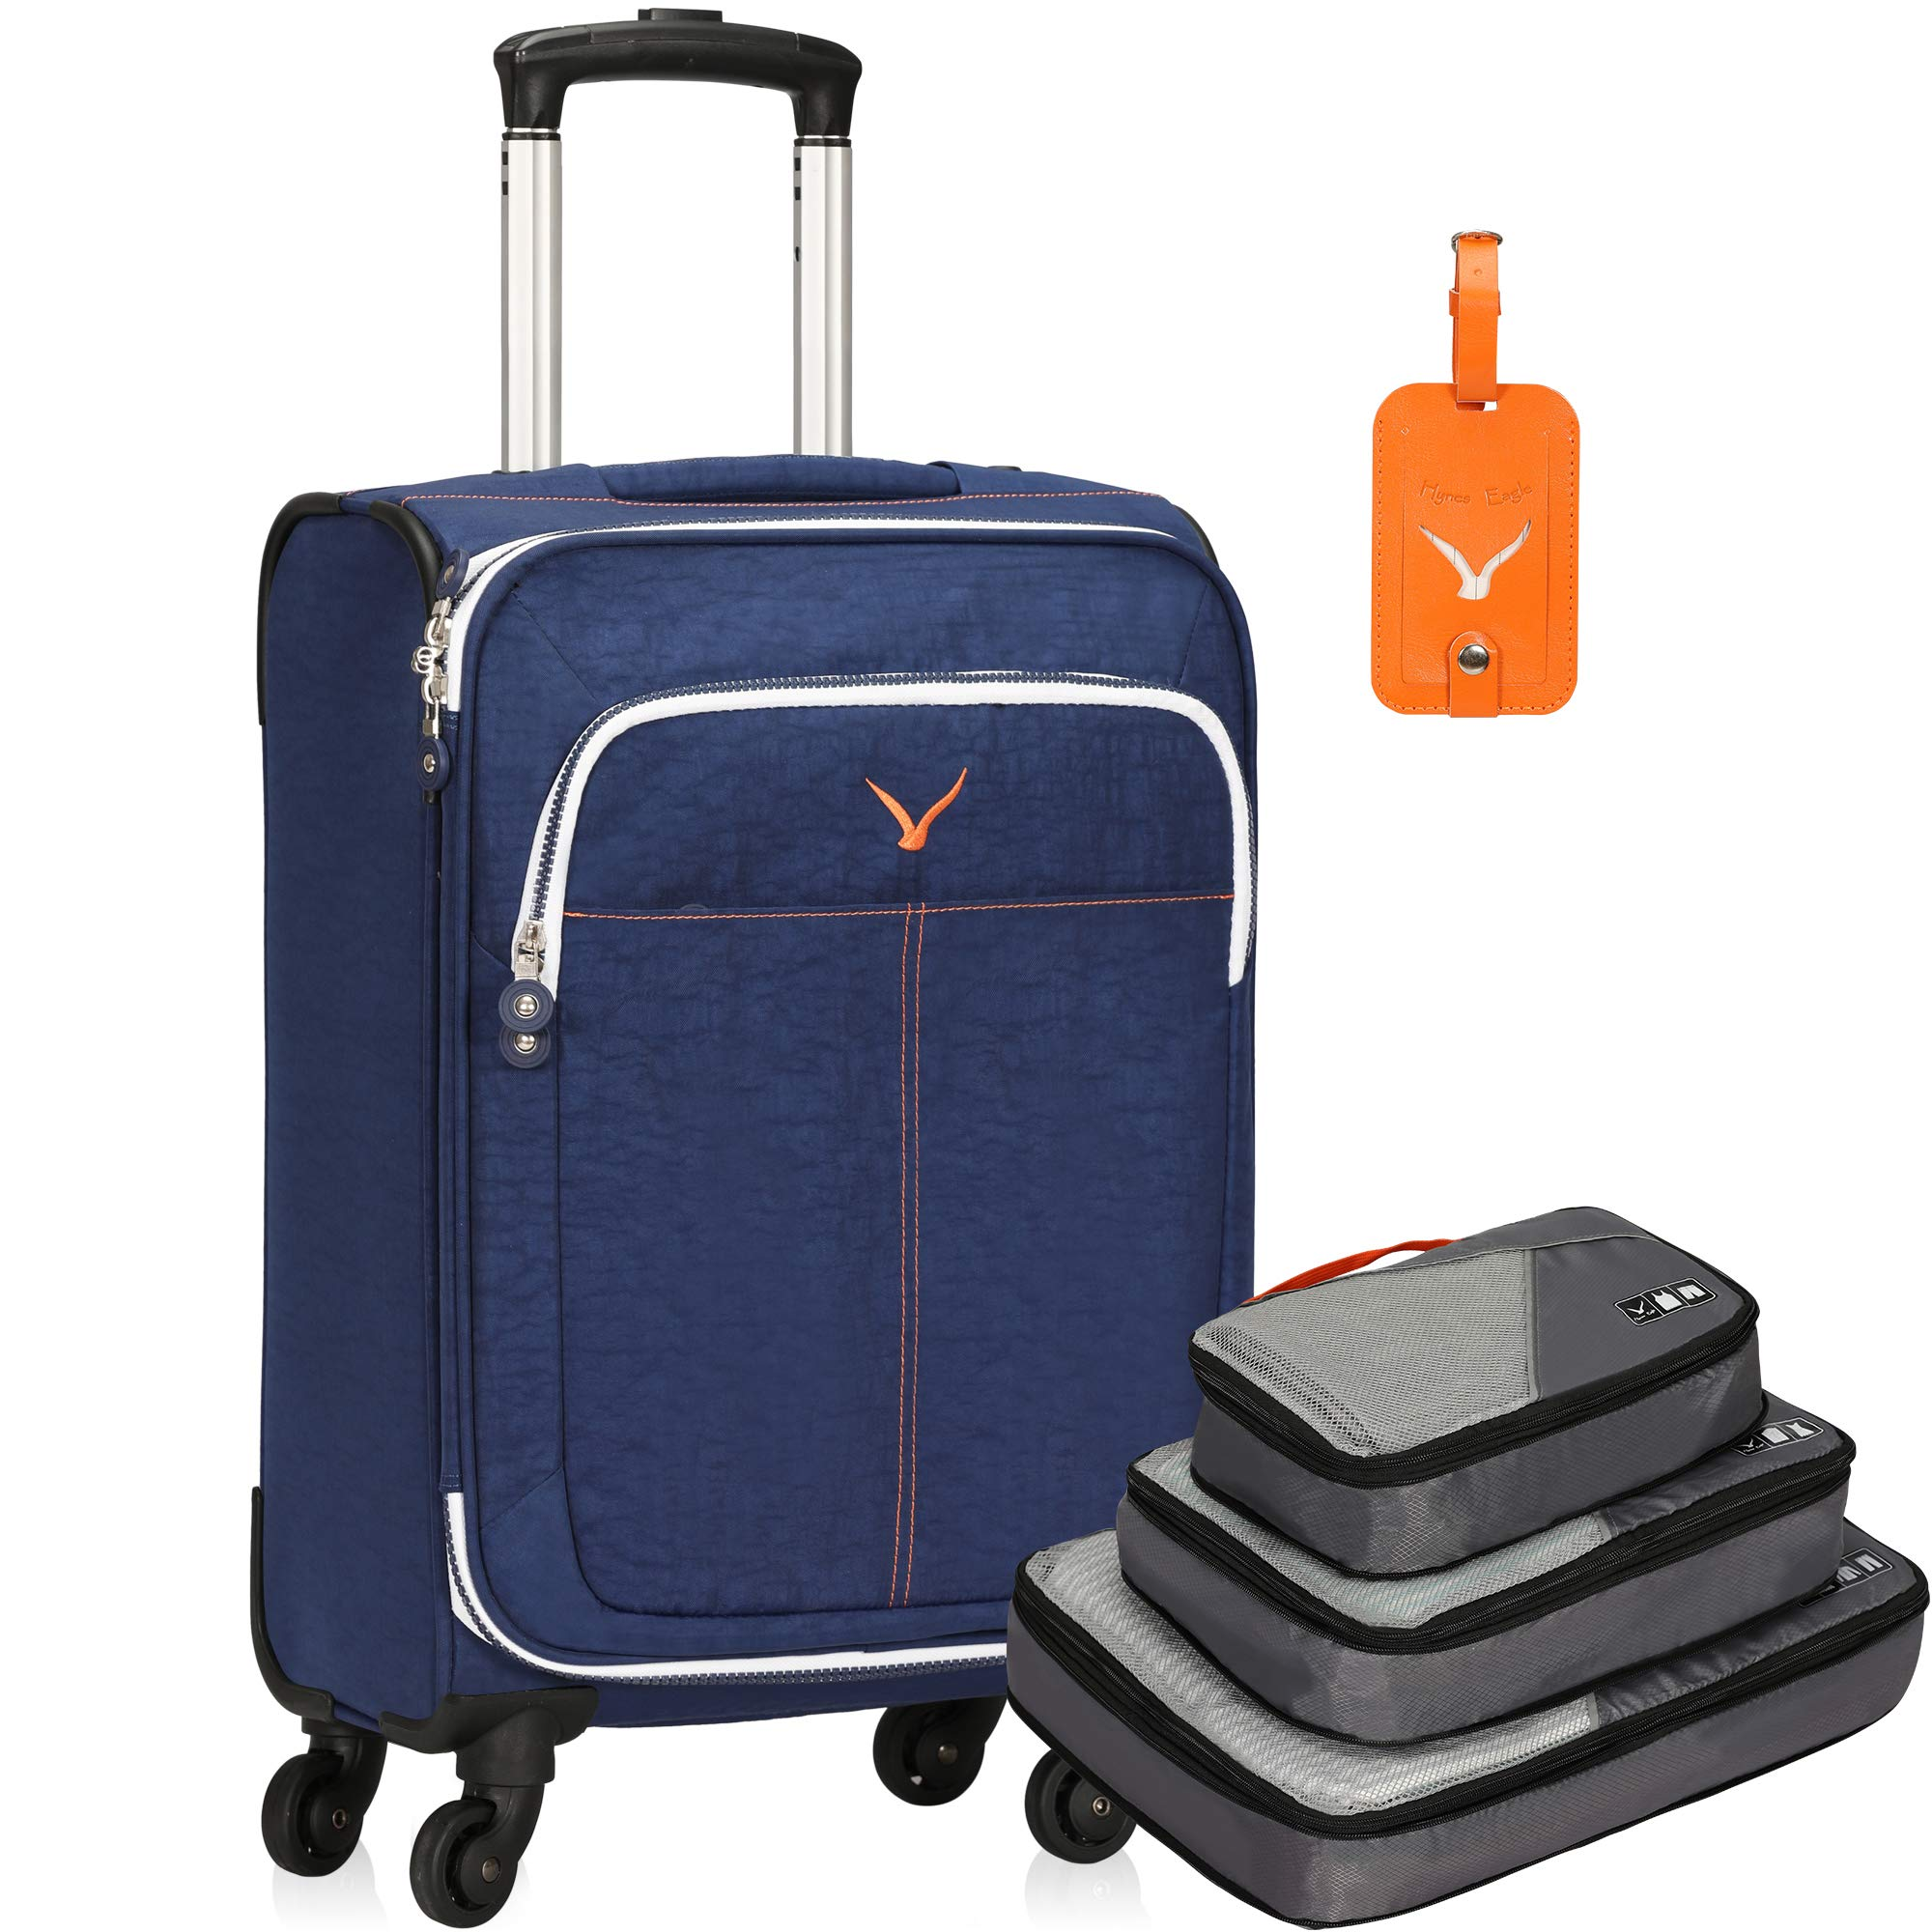 Hynes Eagle 21 inch Softside Luggage with Spinner Wheels 40L Flight Approved Carry on Luggage Travel Suitcase with 3pcs Packing Cubes, Blue